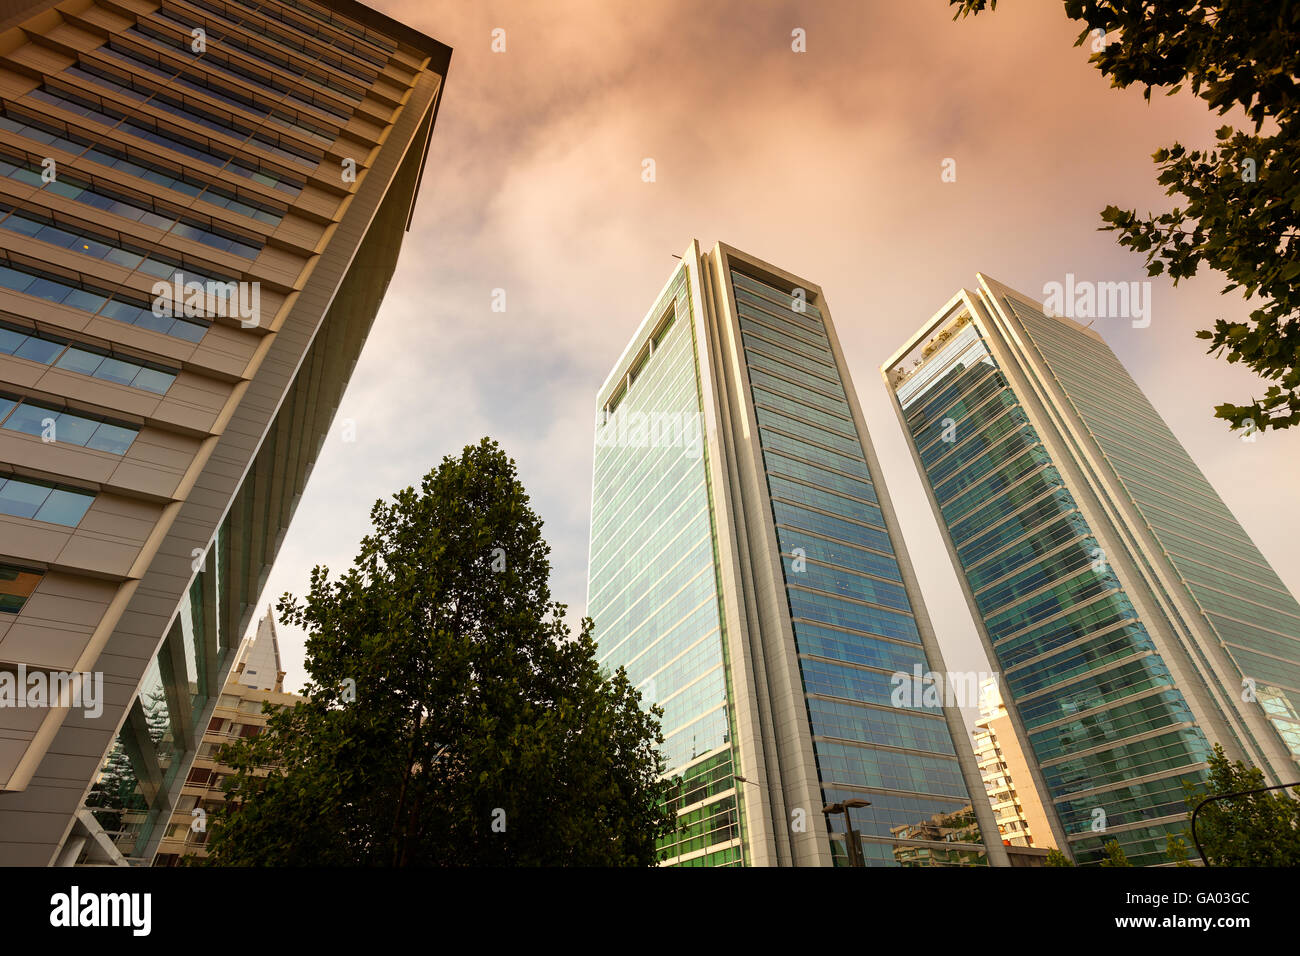 Modern buildings at the wealthy neighborhood Isidora Goyenechea, Santiago de Chile - Stock Image